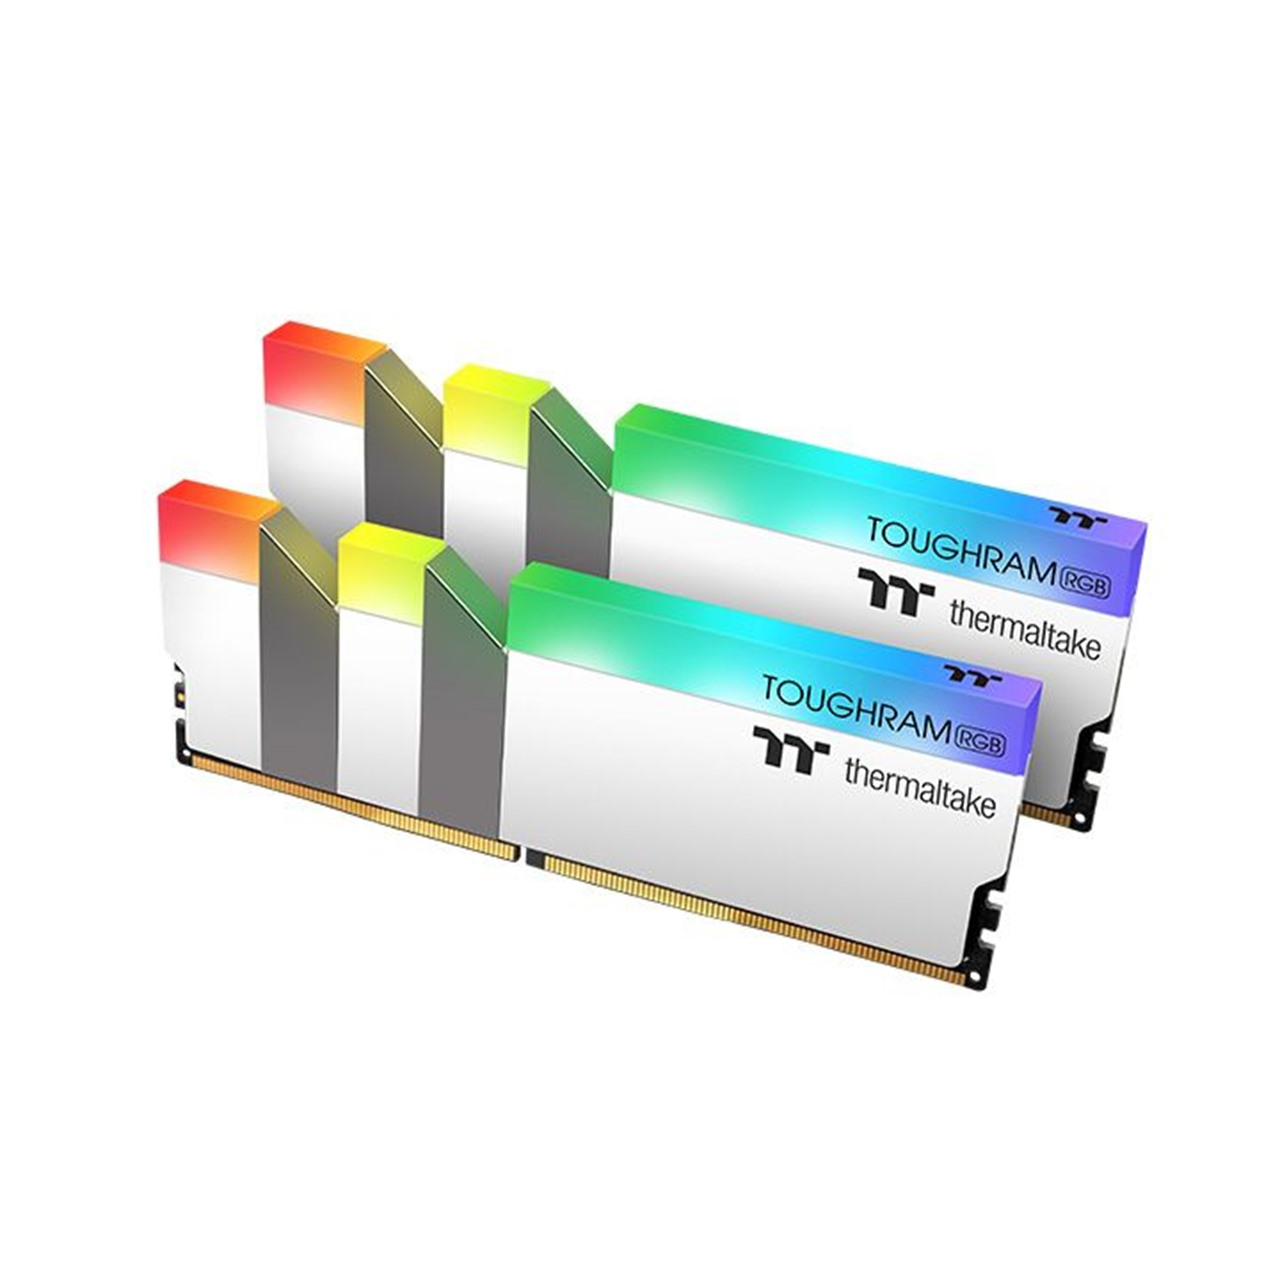 TOUGHRAM RGB Memory DDR4 16GB (8GB x 2)-White